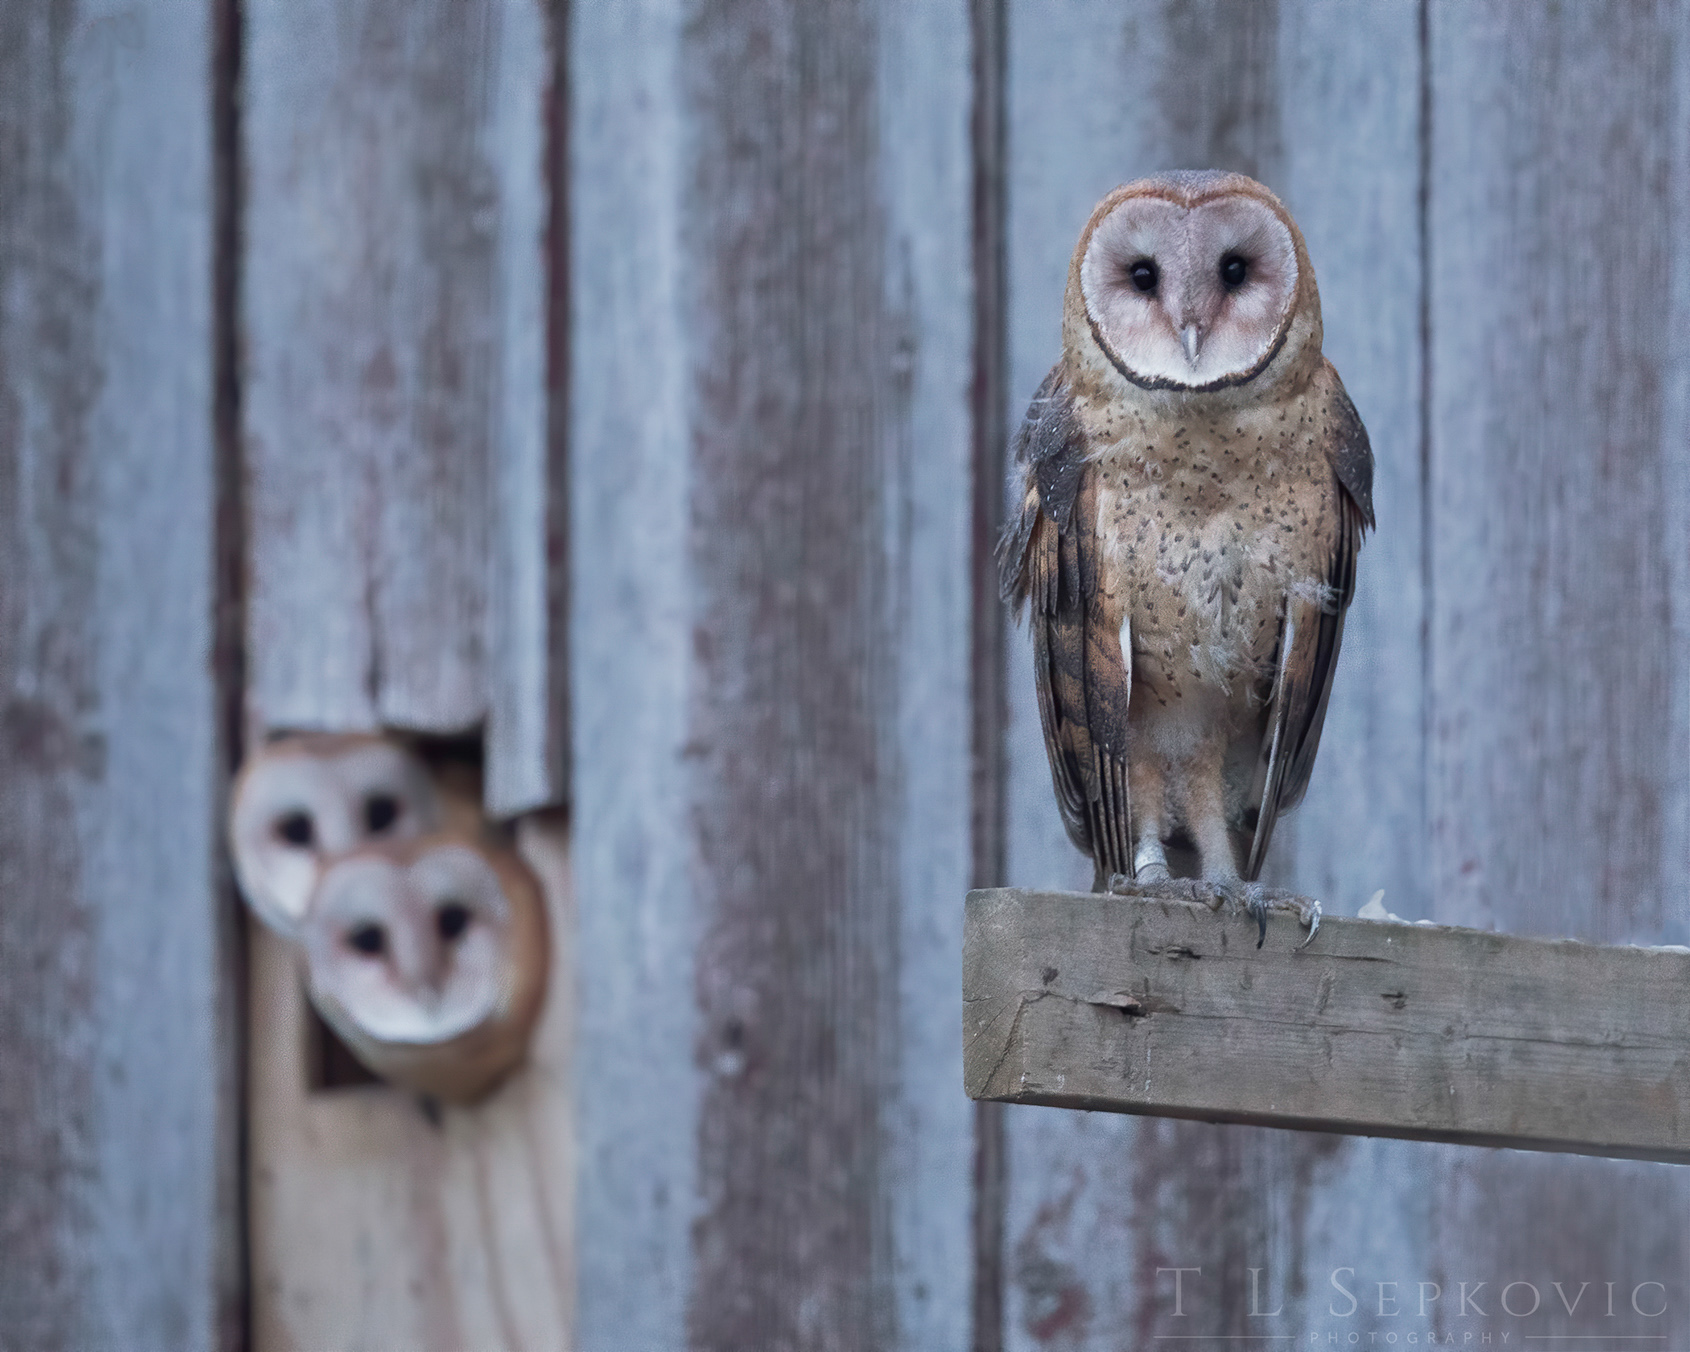 Image of two Barn Owls